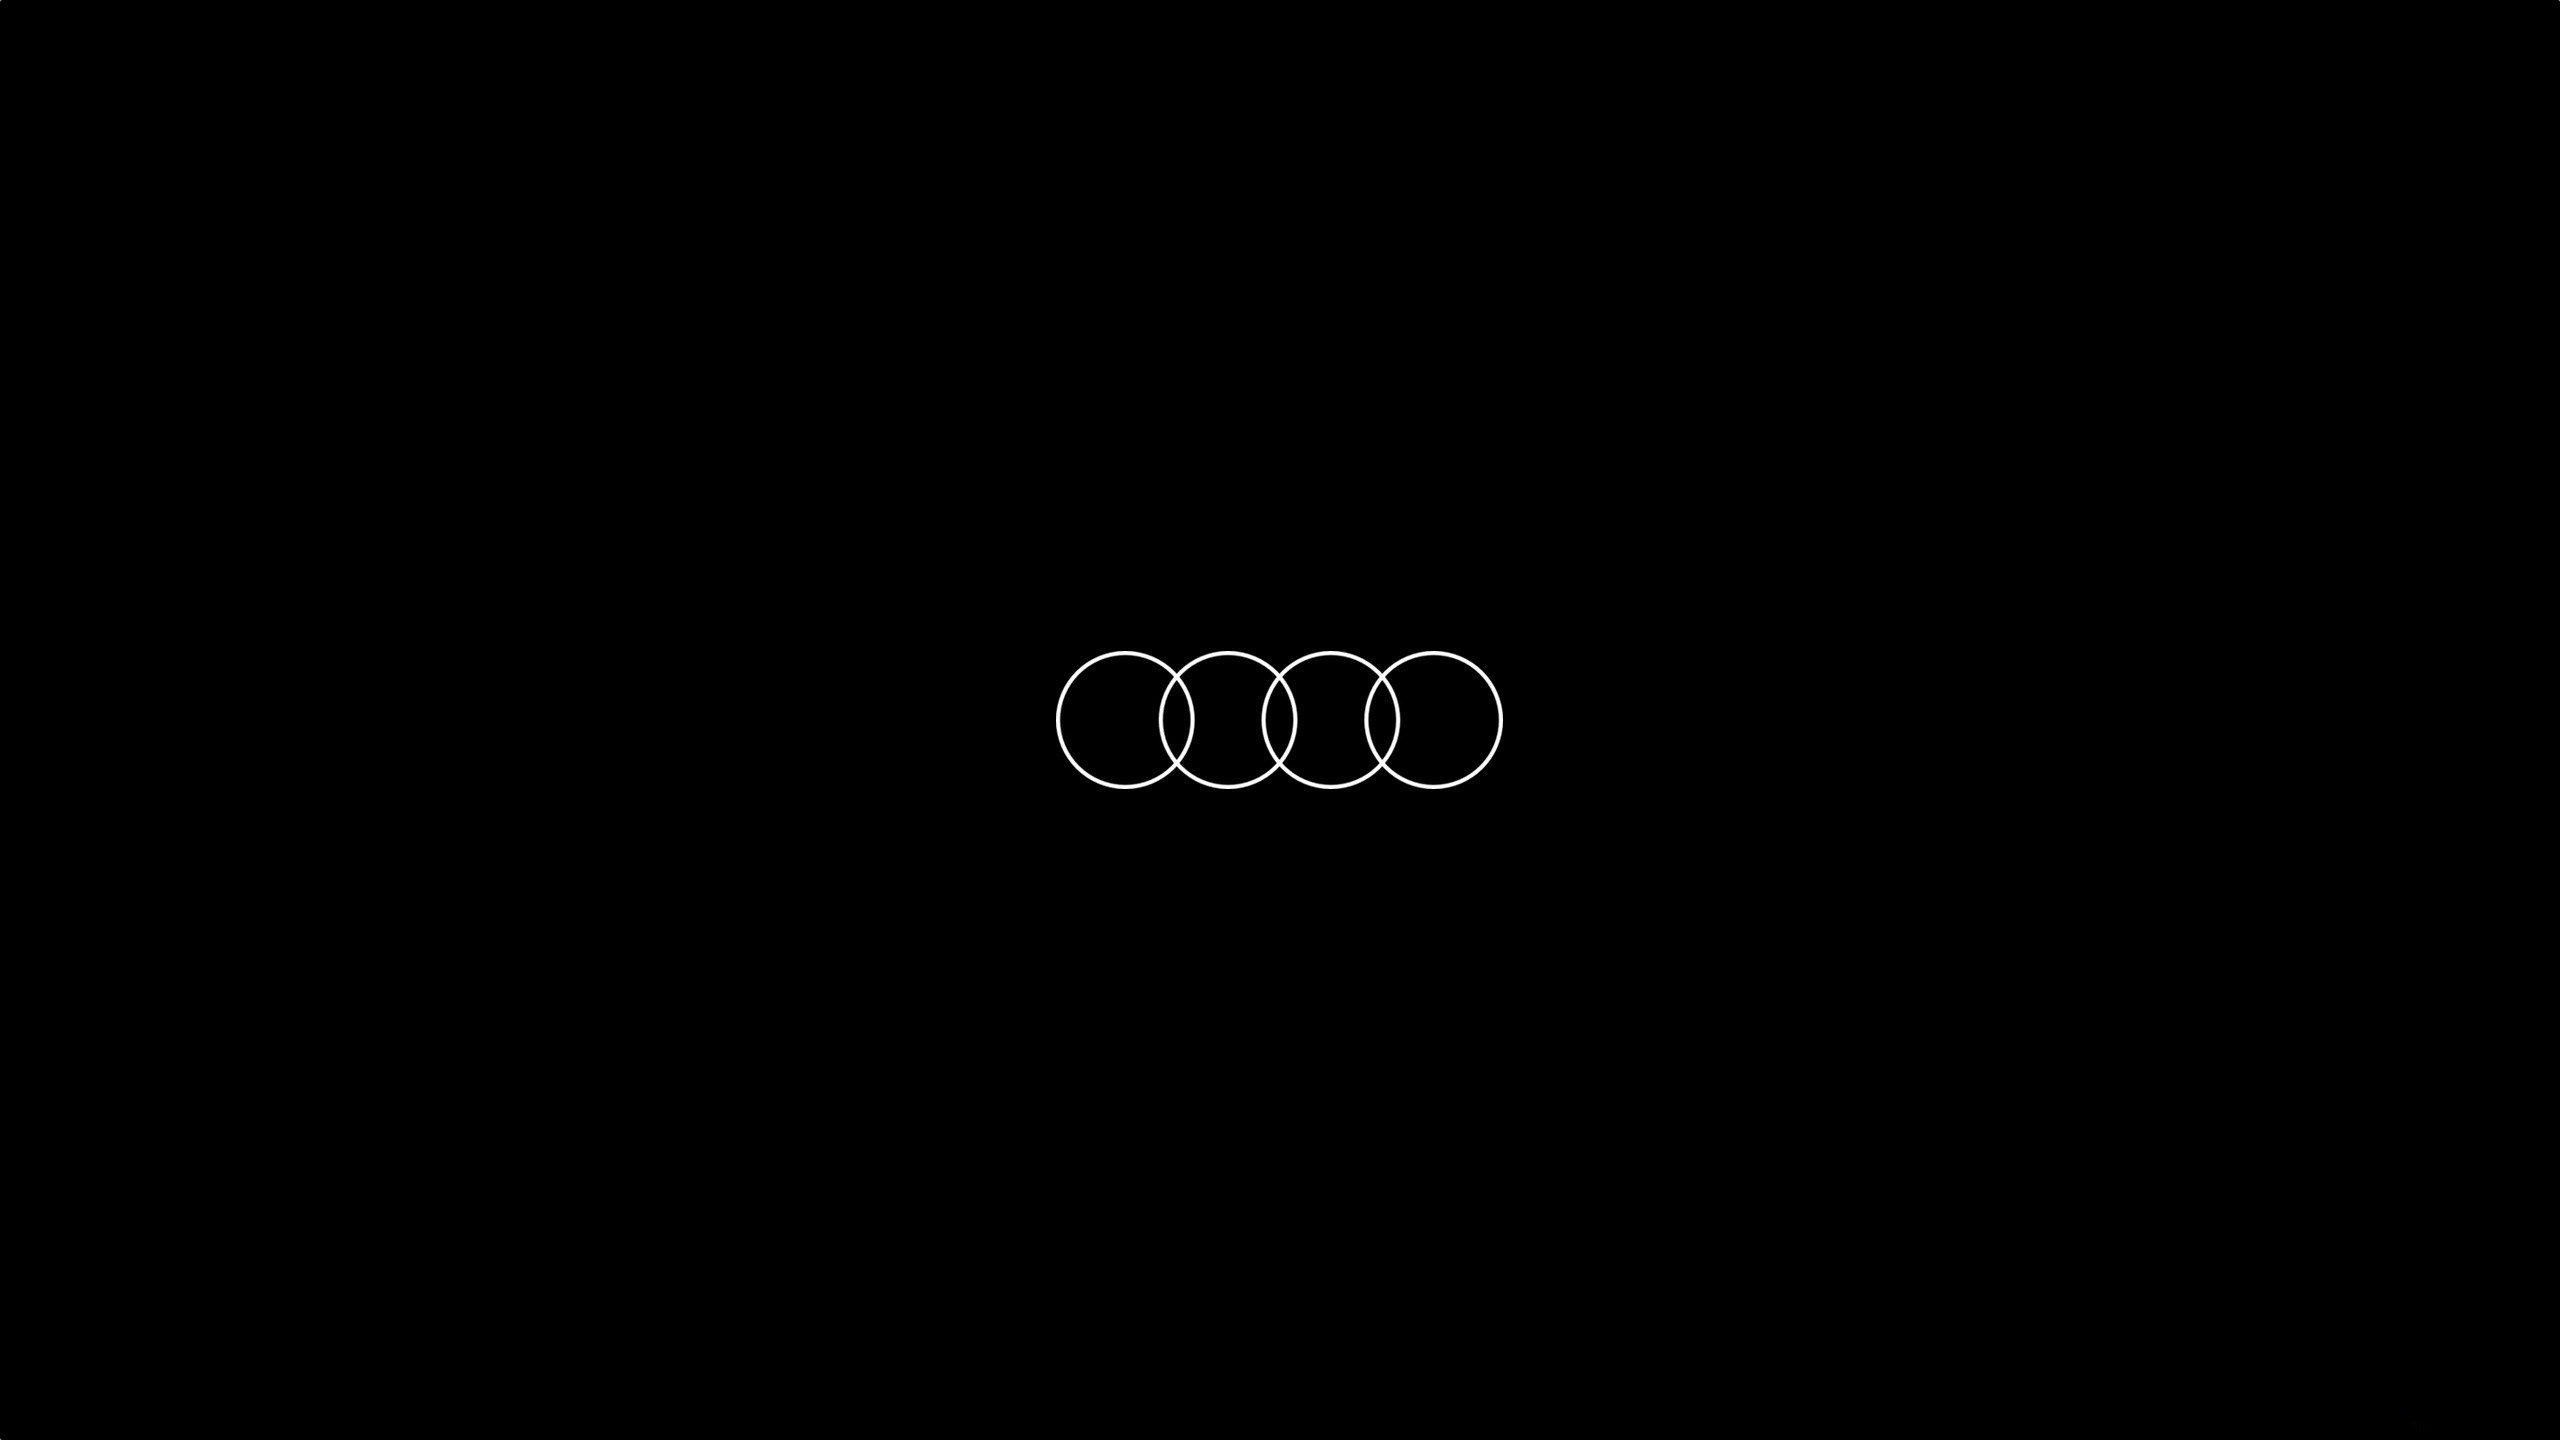 Free Download Car Wallpapers For Mobile Audi Logo Wallpaper 11573 Baltana